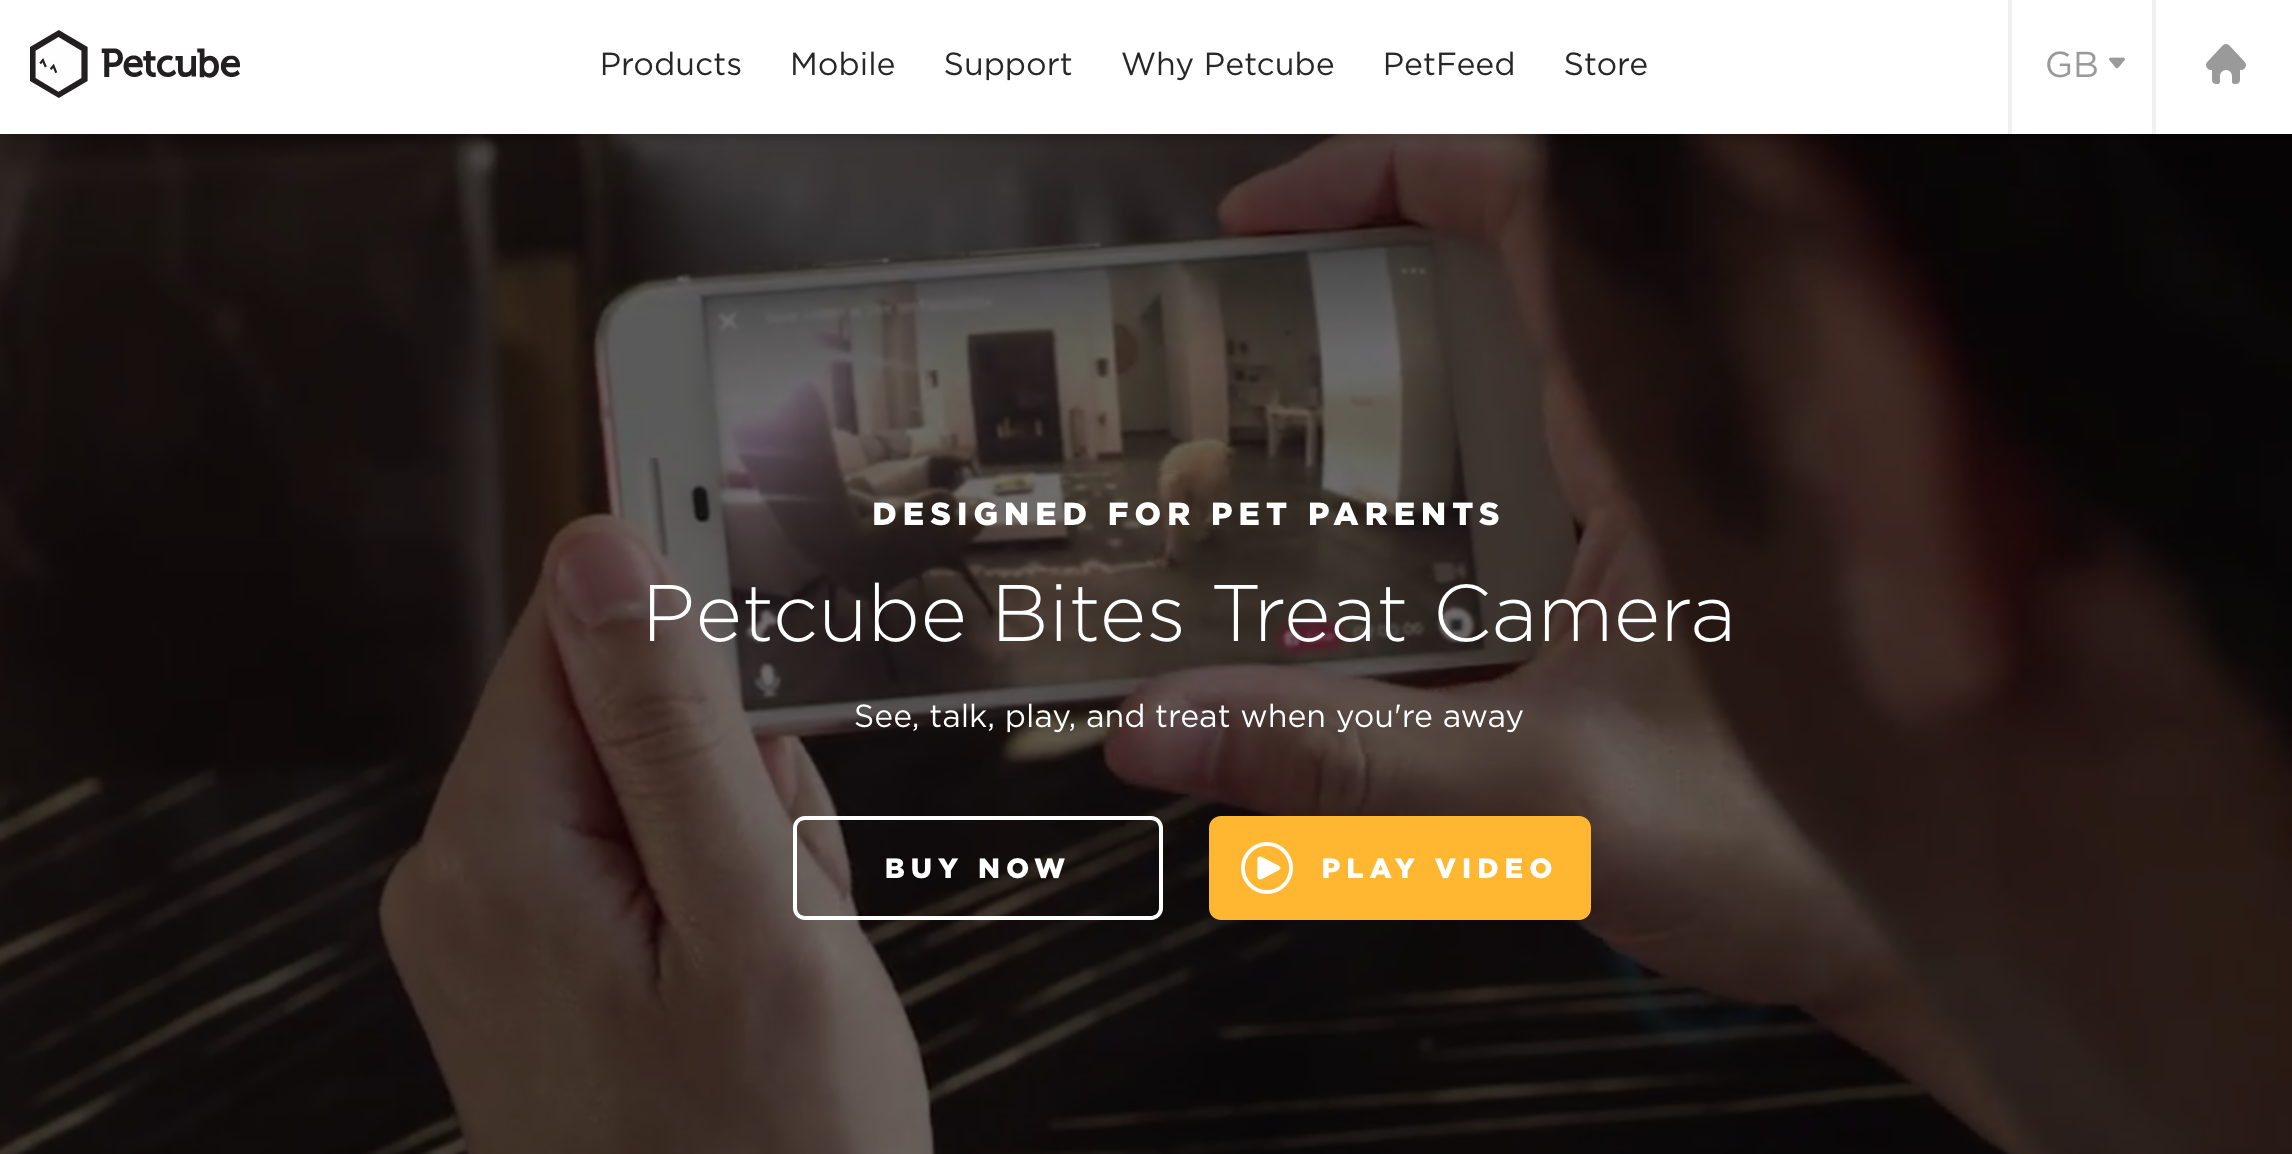 Petcube homepage banner